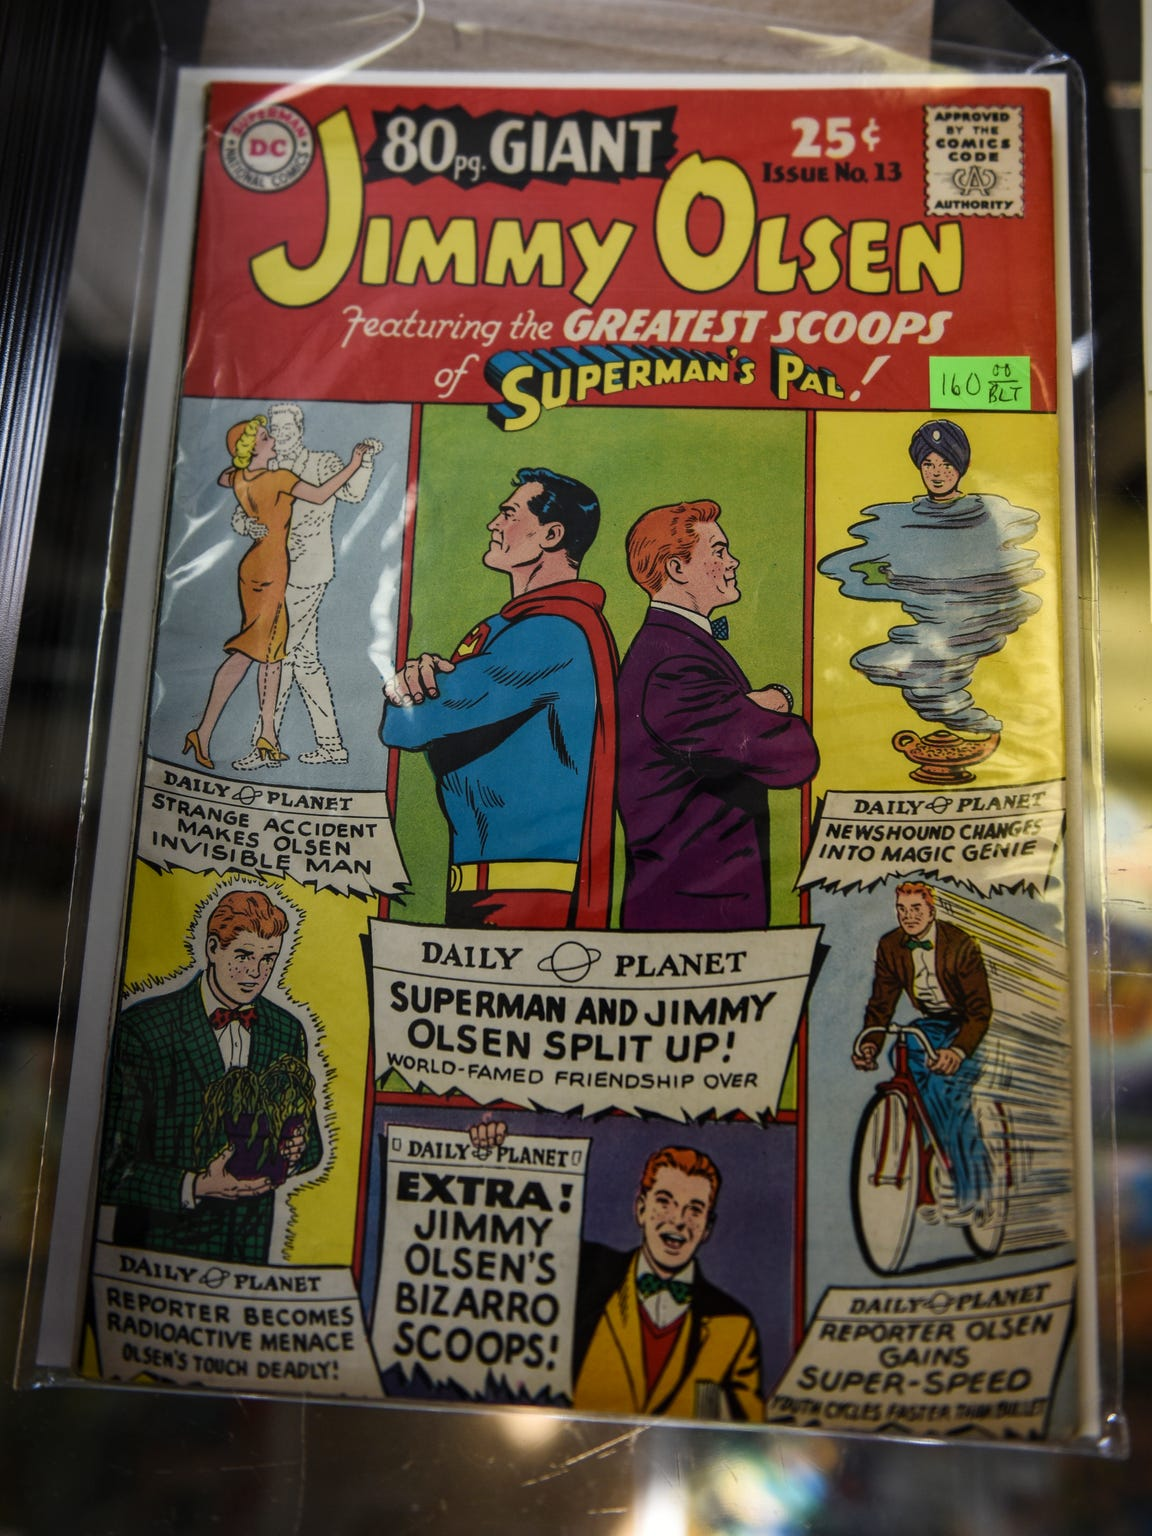 A giant comic book of Jimmy Olsen at Comics and Paperbacks Plus in Palmyra.